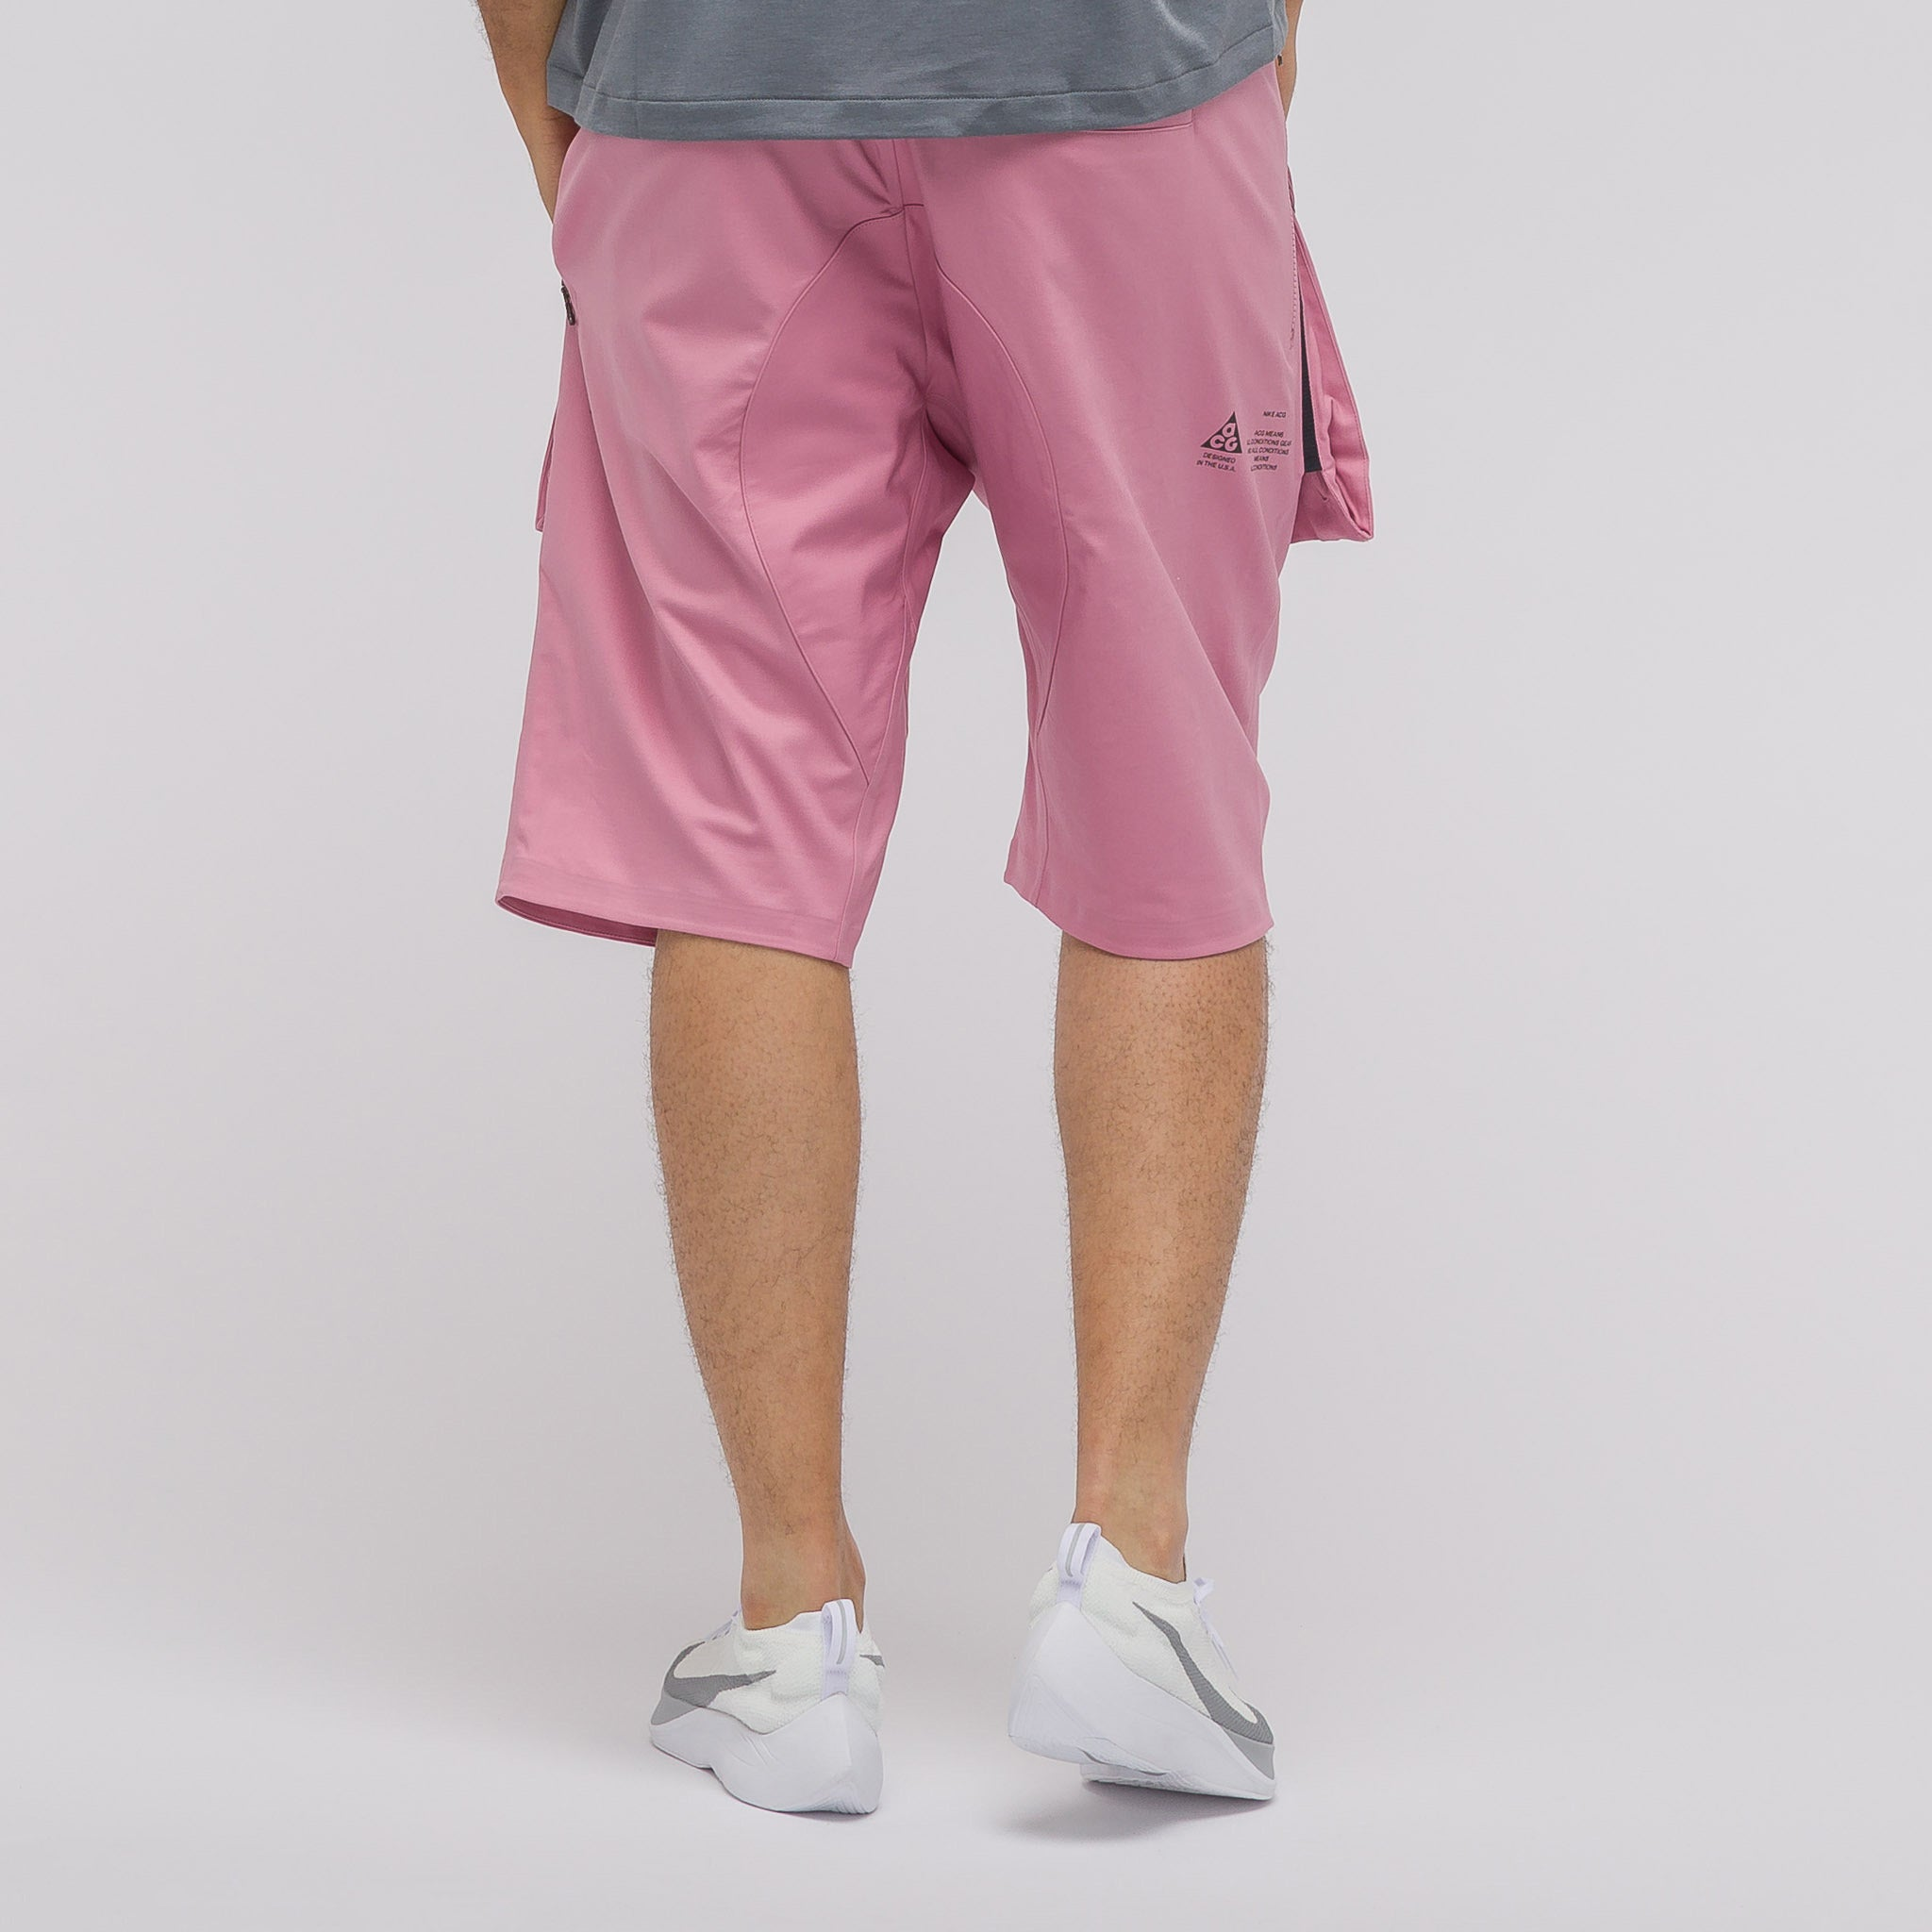 ACG Deploy Cargo Shorts in Elemental Pink